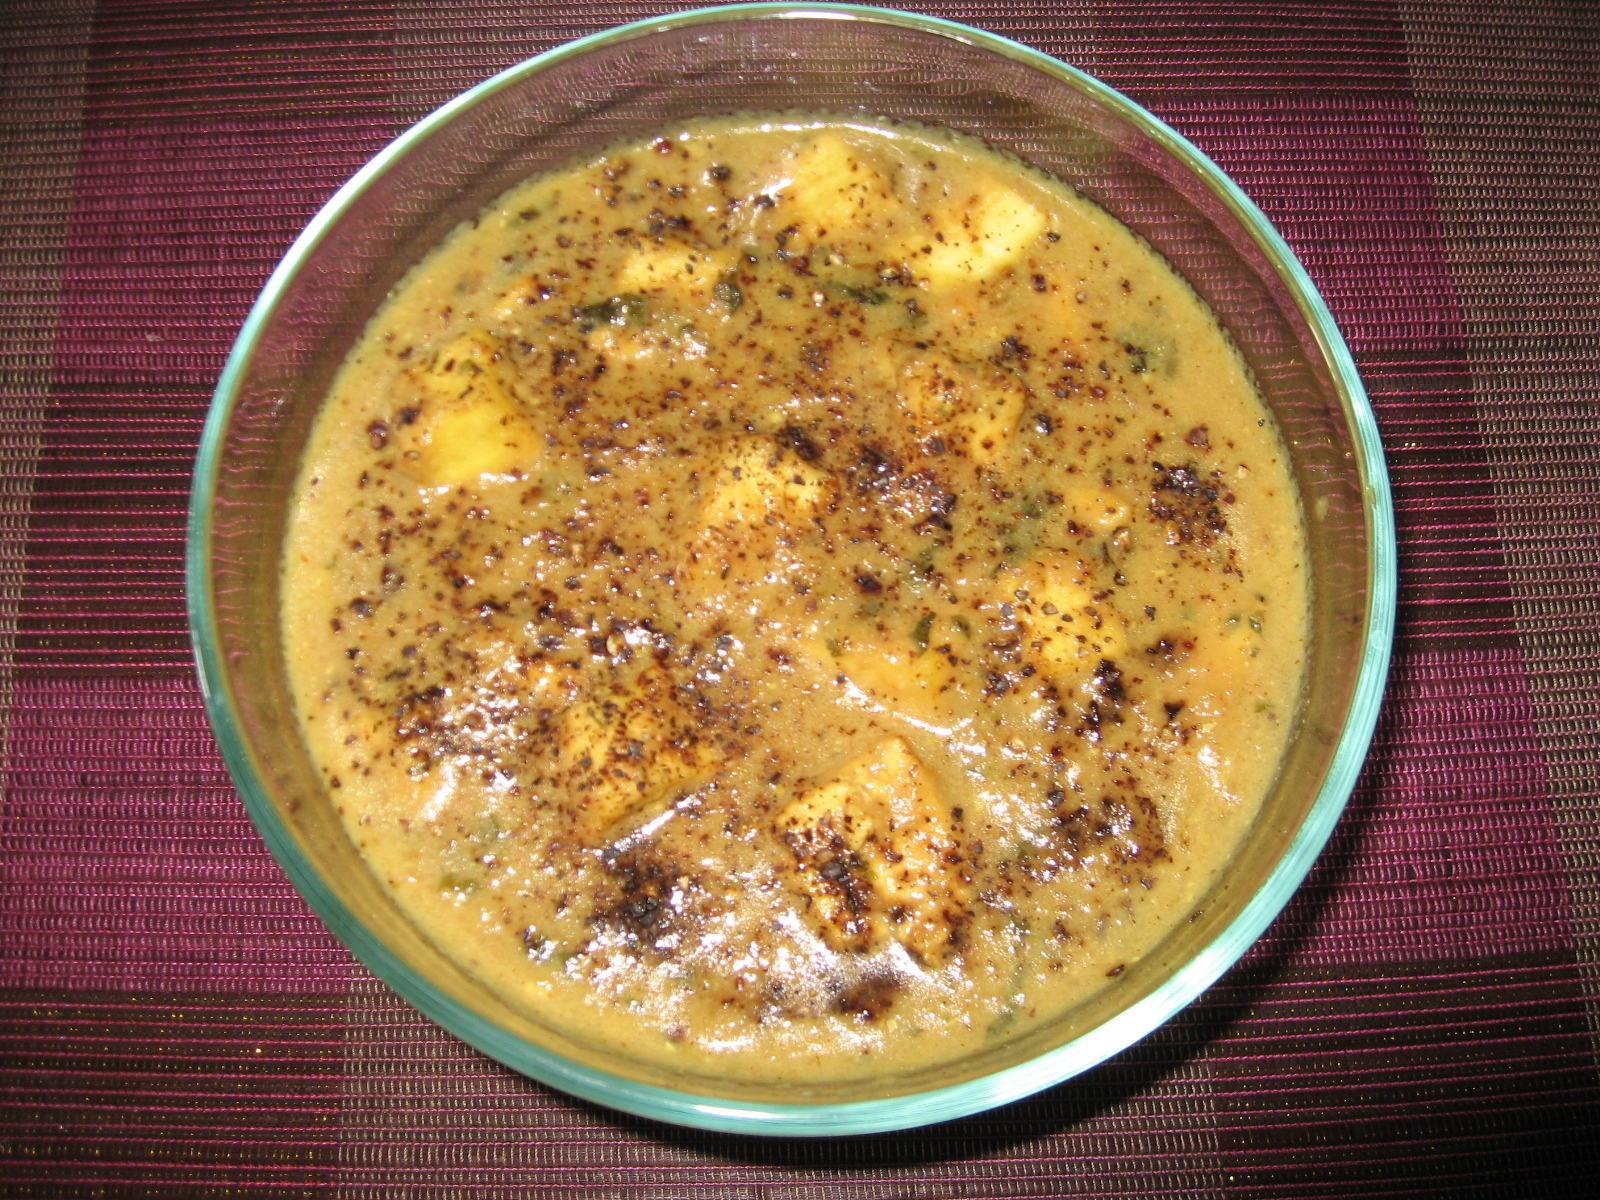 Dum Paneer Kali Mirch picture